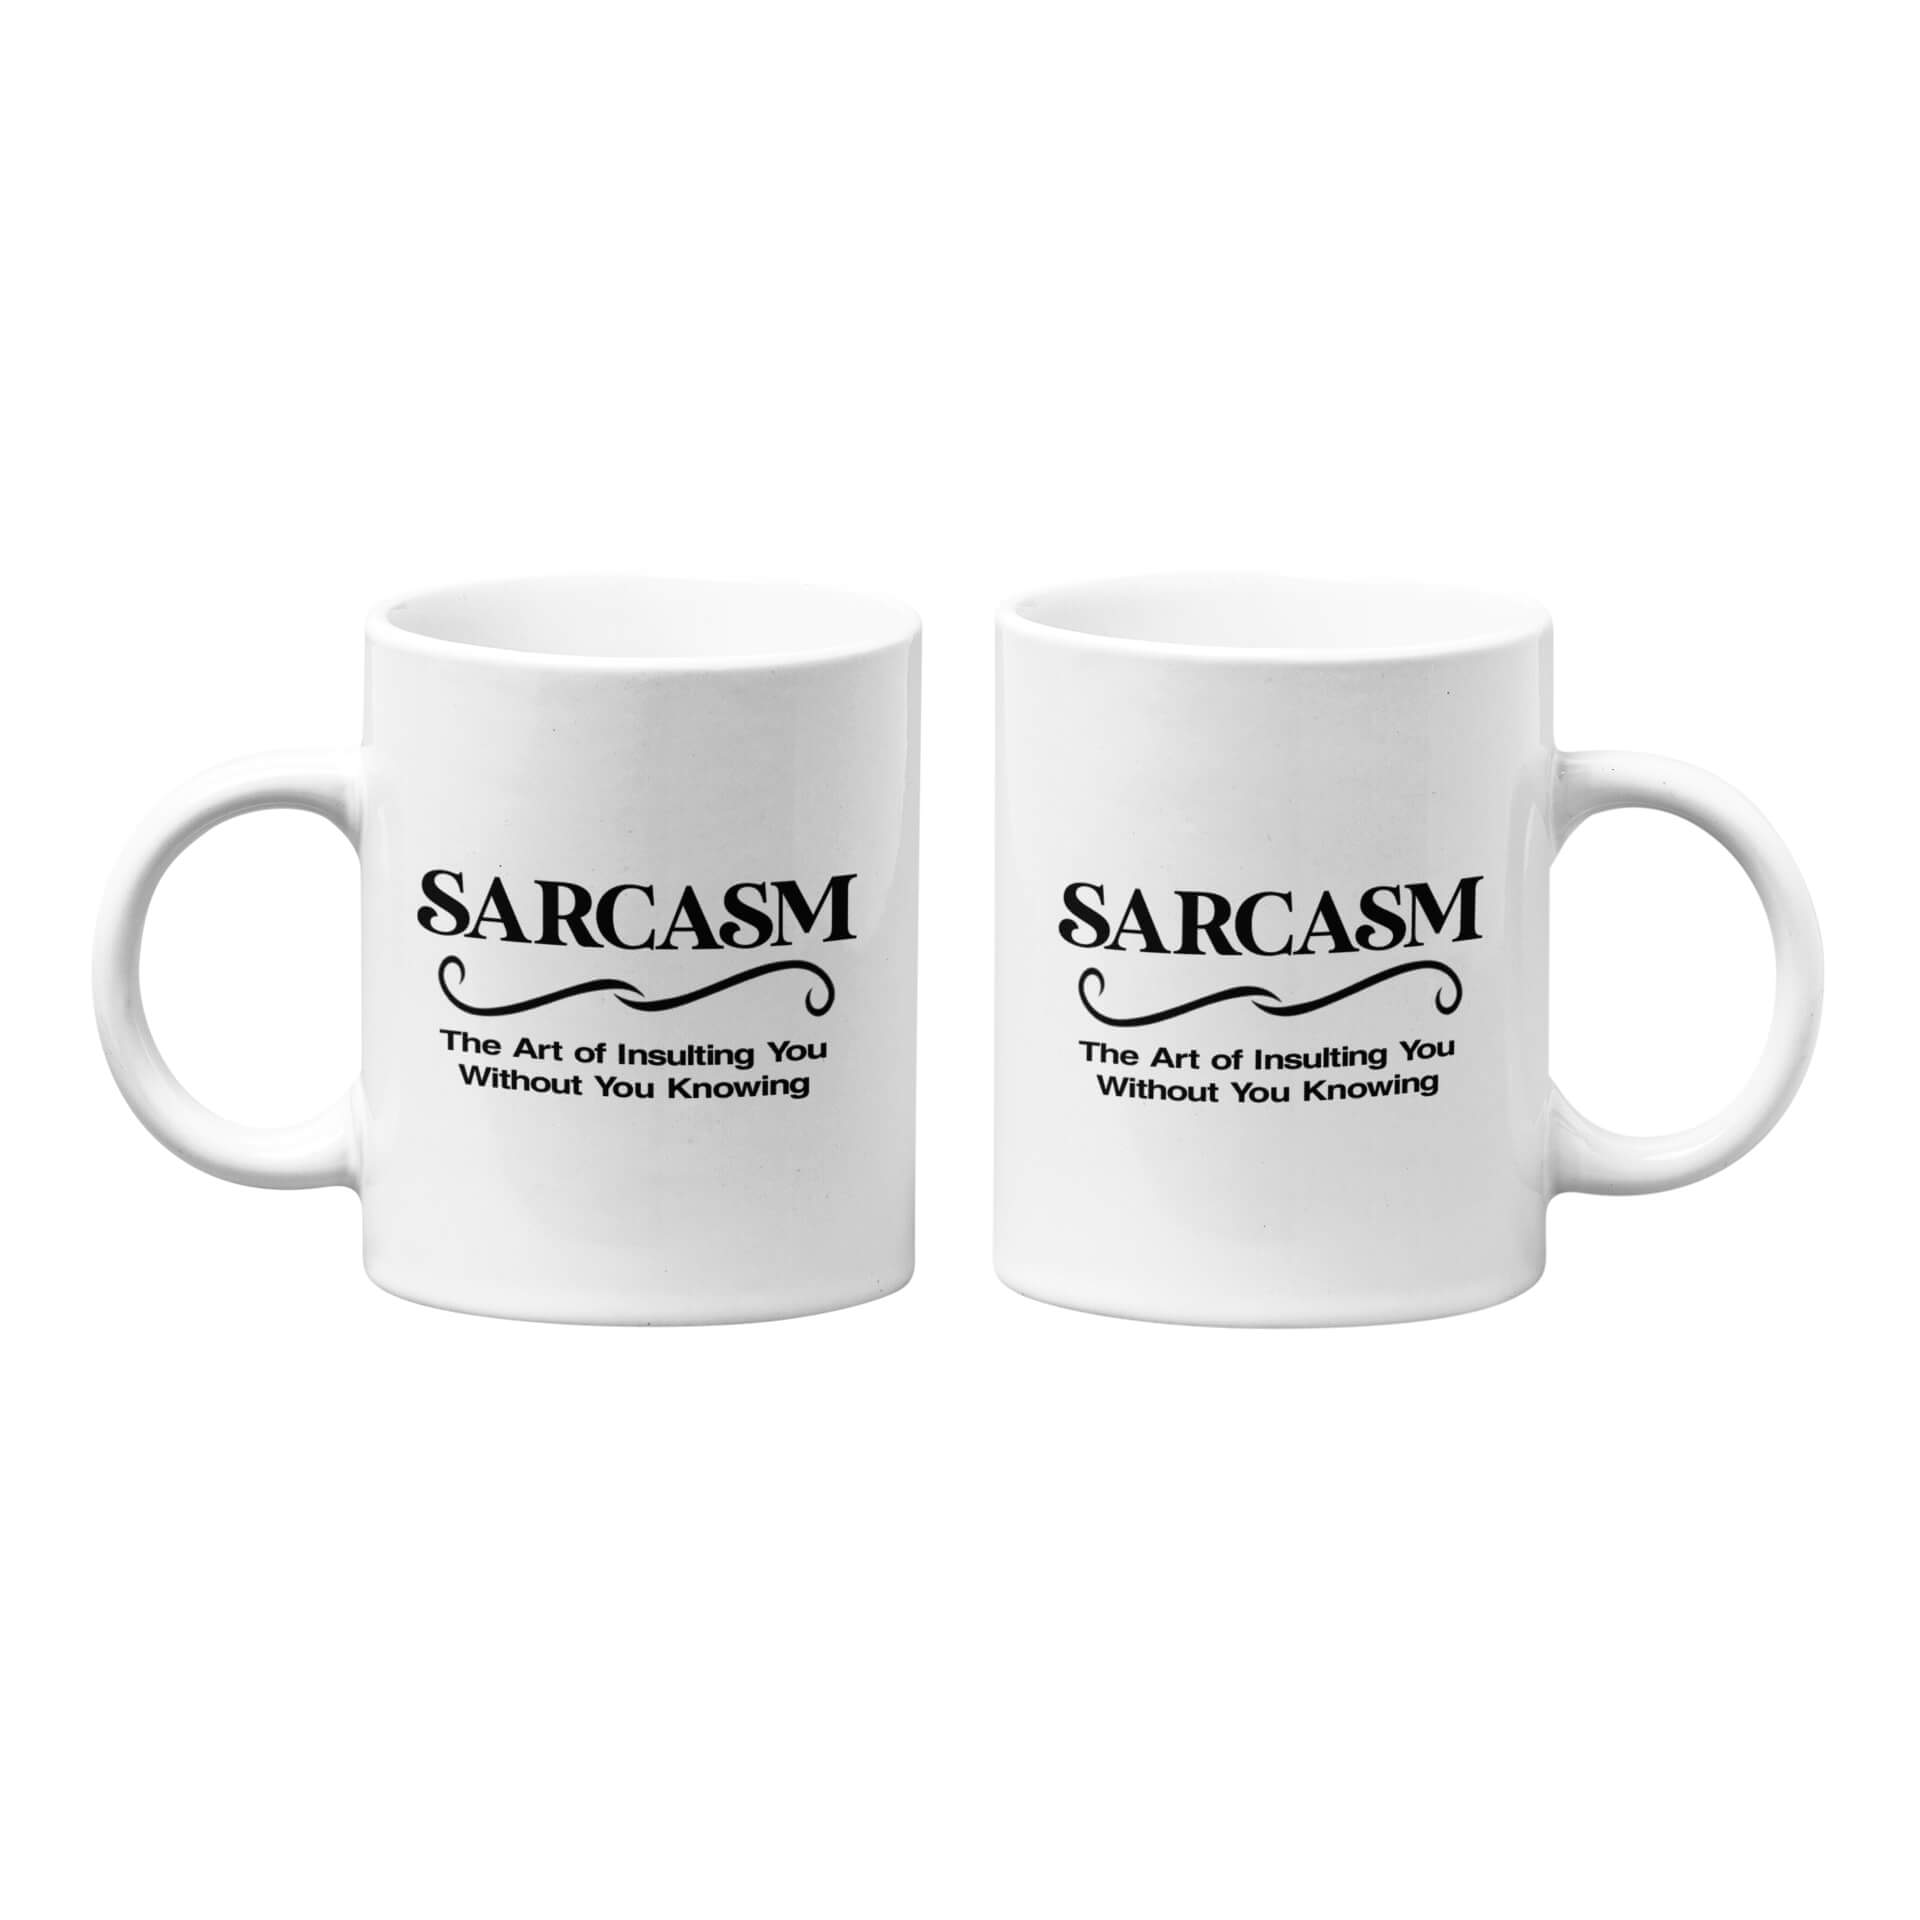 Sarcasm - The Art of Insulting You Without You Knowing Mug